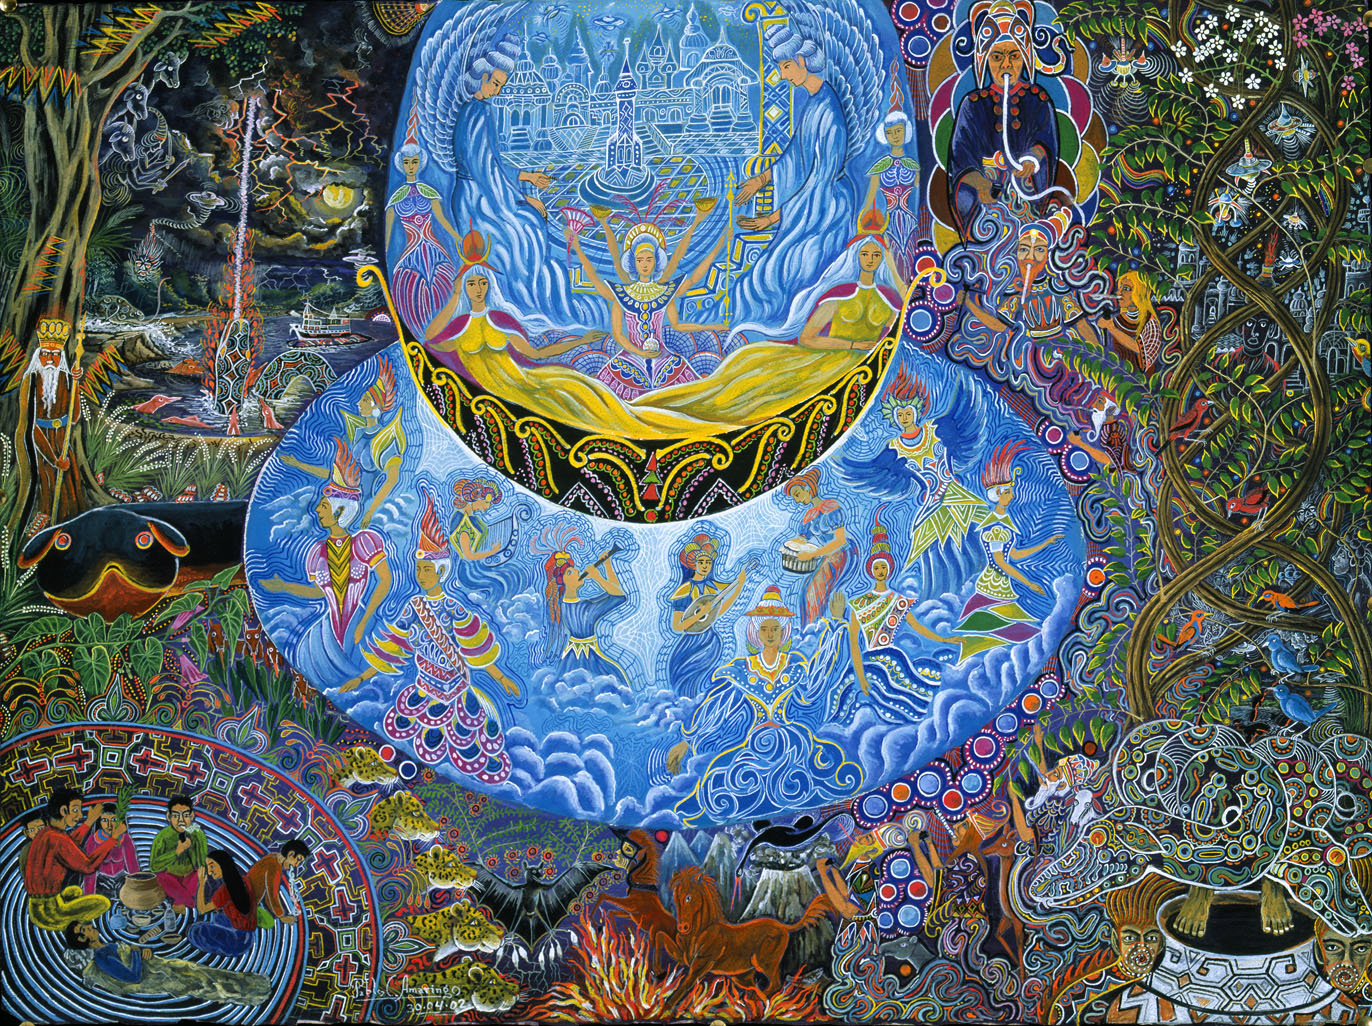 Popular   Wallpaper Home Screen Trippy - ayahuasca%2Bart%2Bwallpaper  Image_46378.jpg